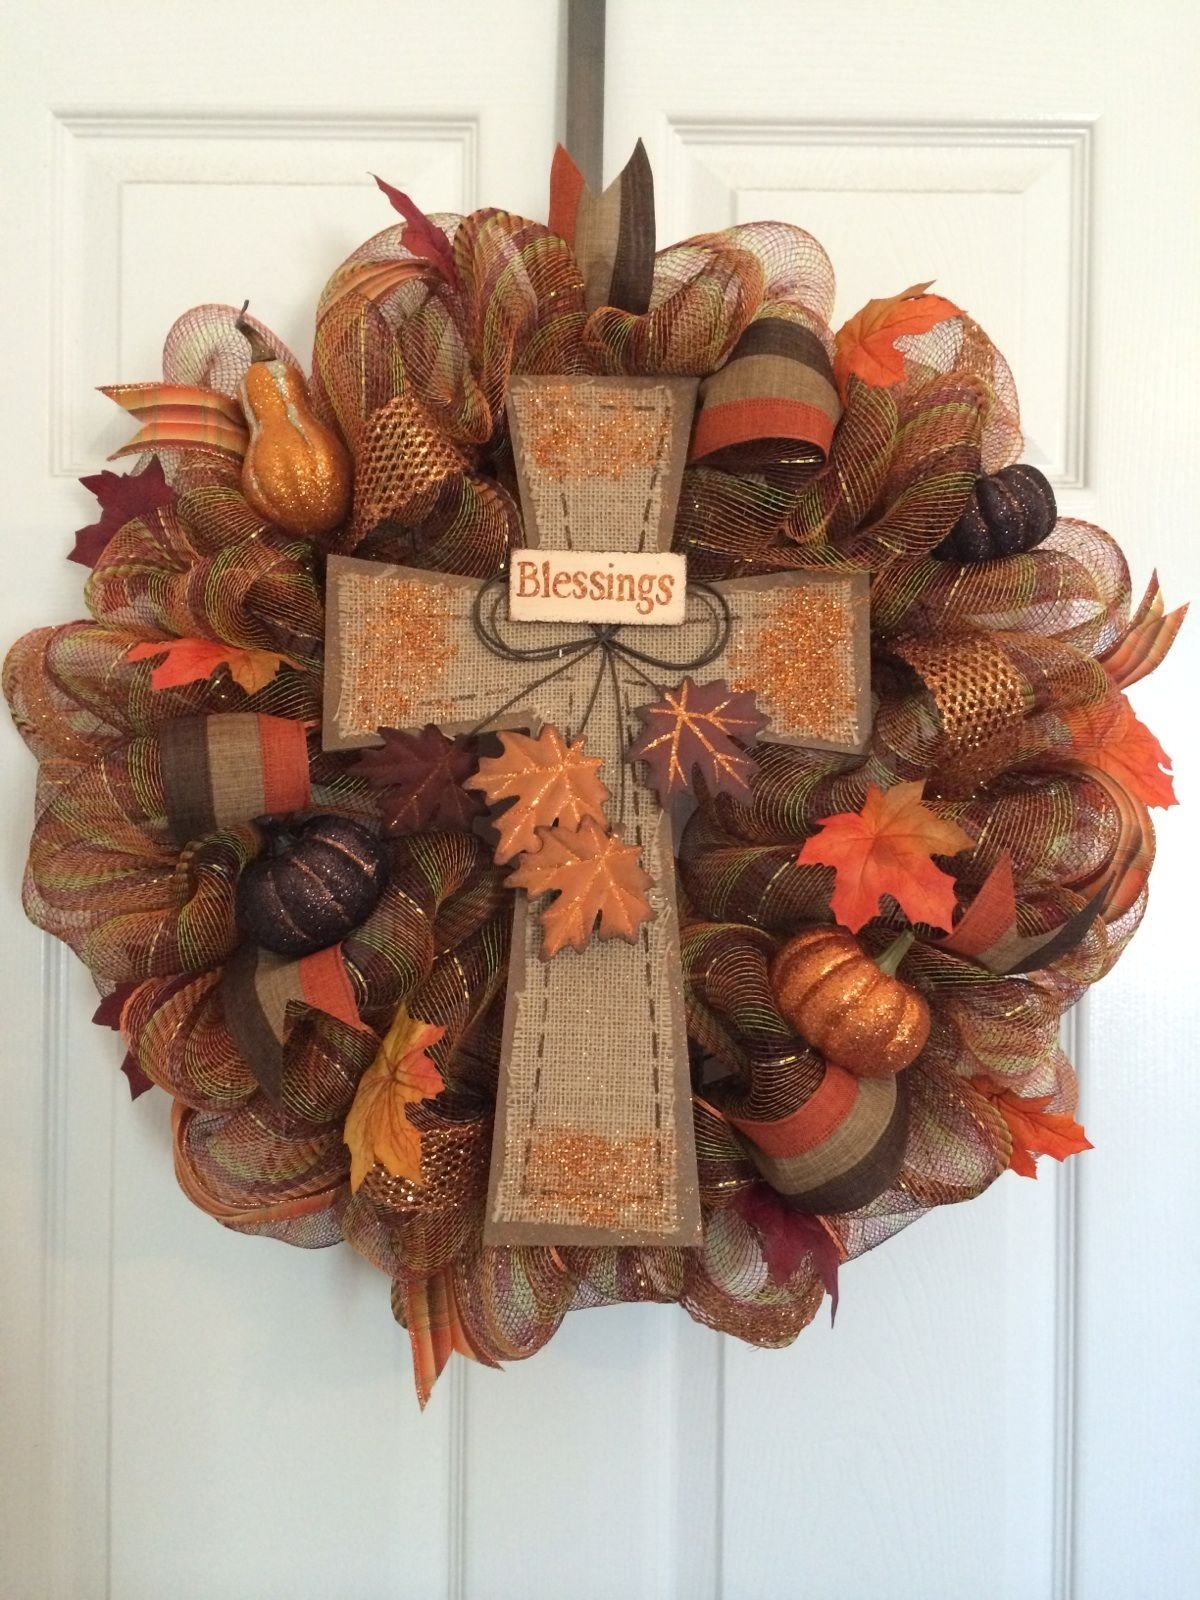 10 Fantastic Fall Wreath Ideas With Deco Mesh 55 awesome wreaths to adorn your front door fall deco mesh 2